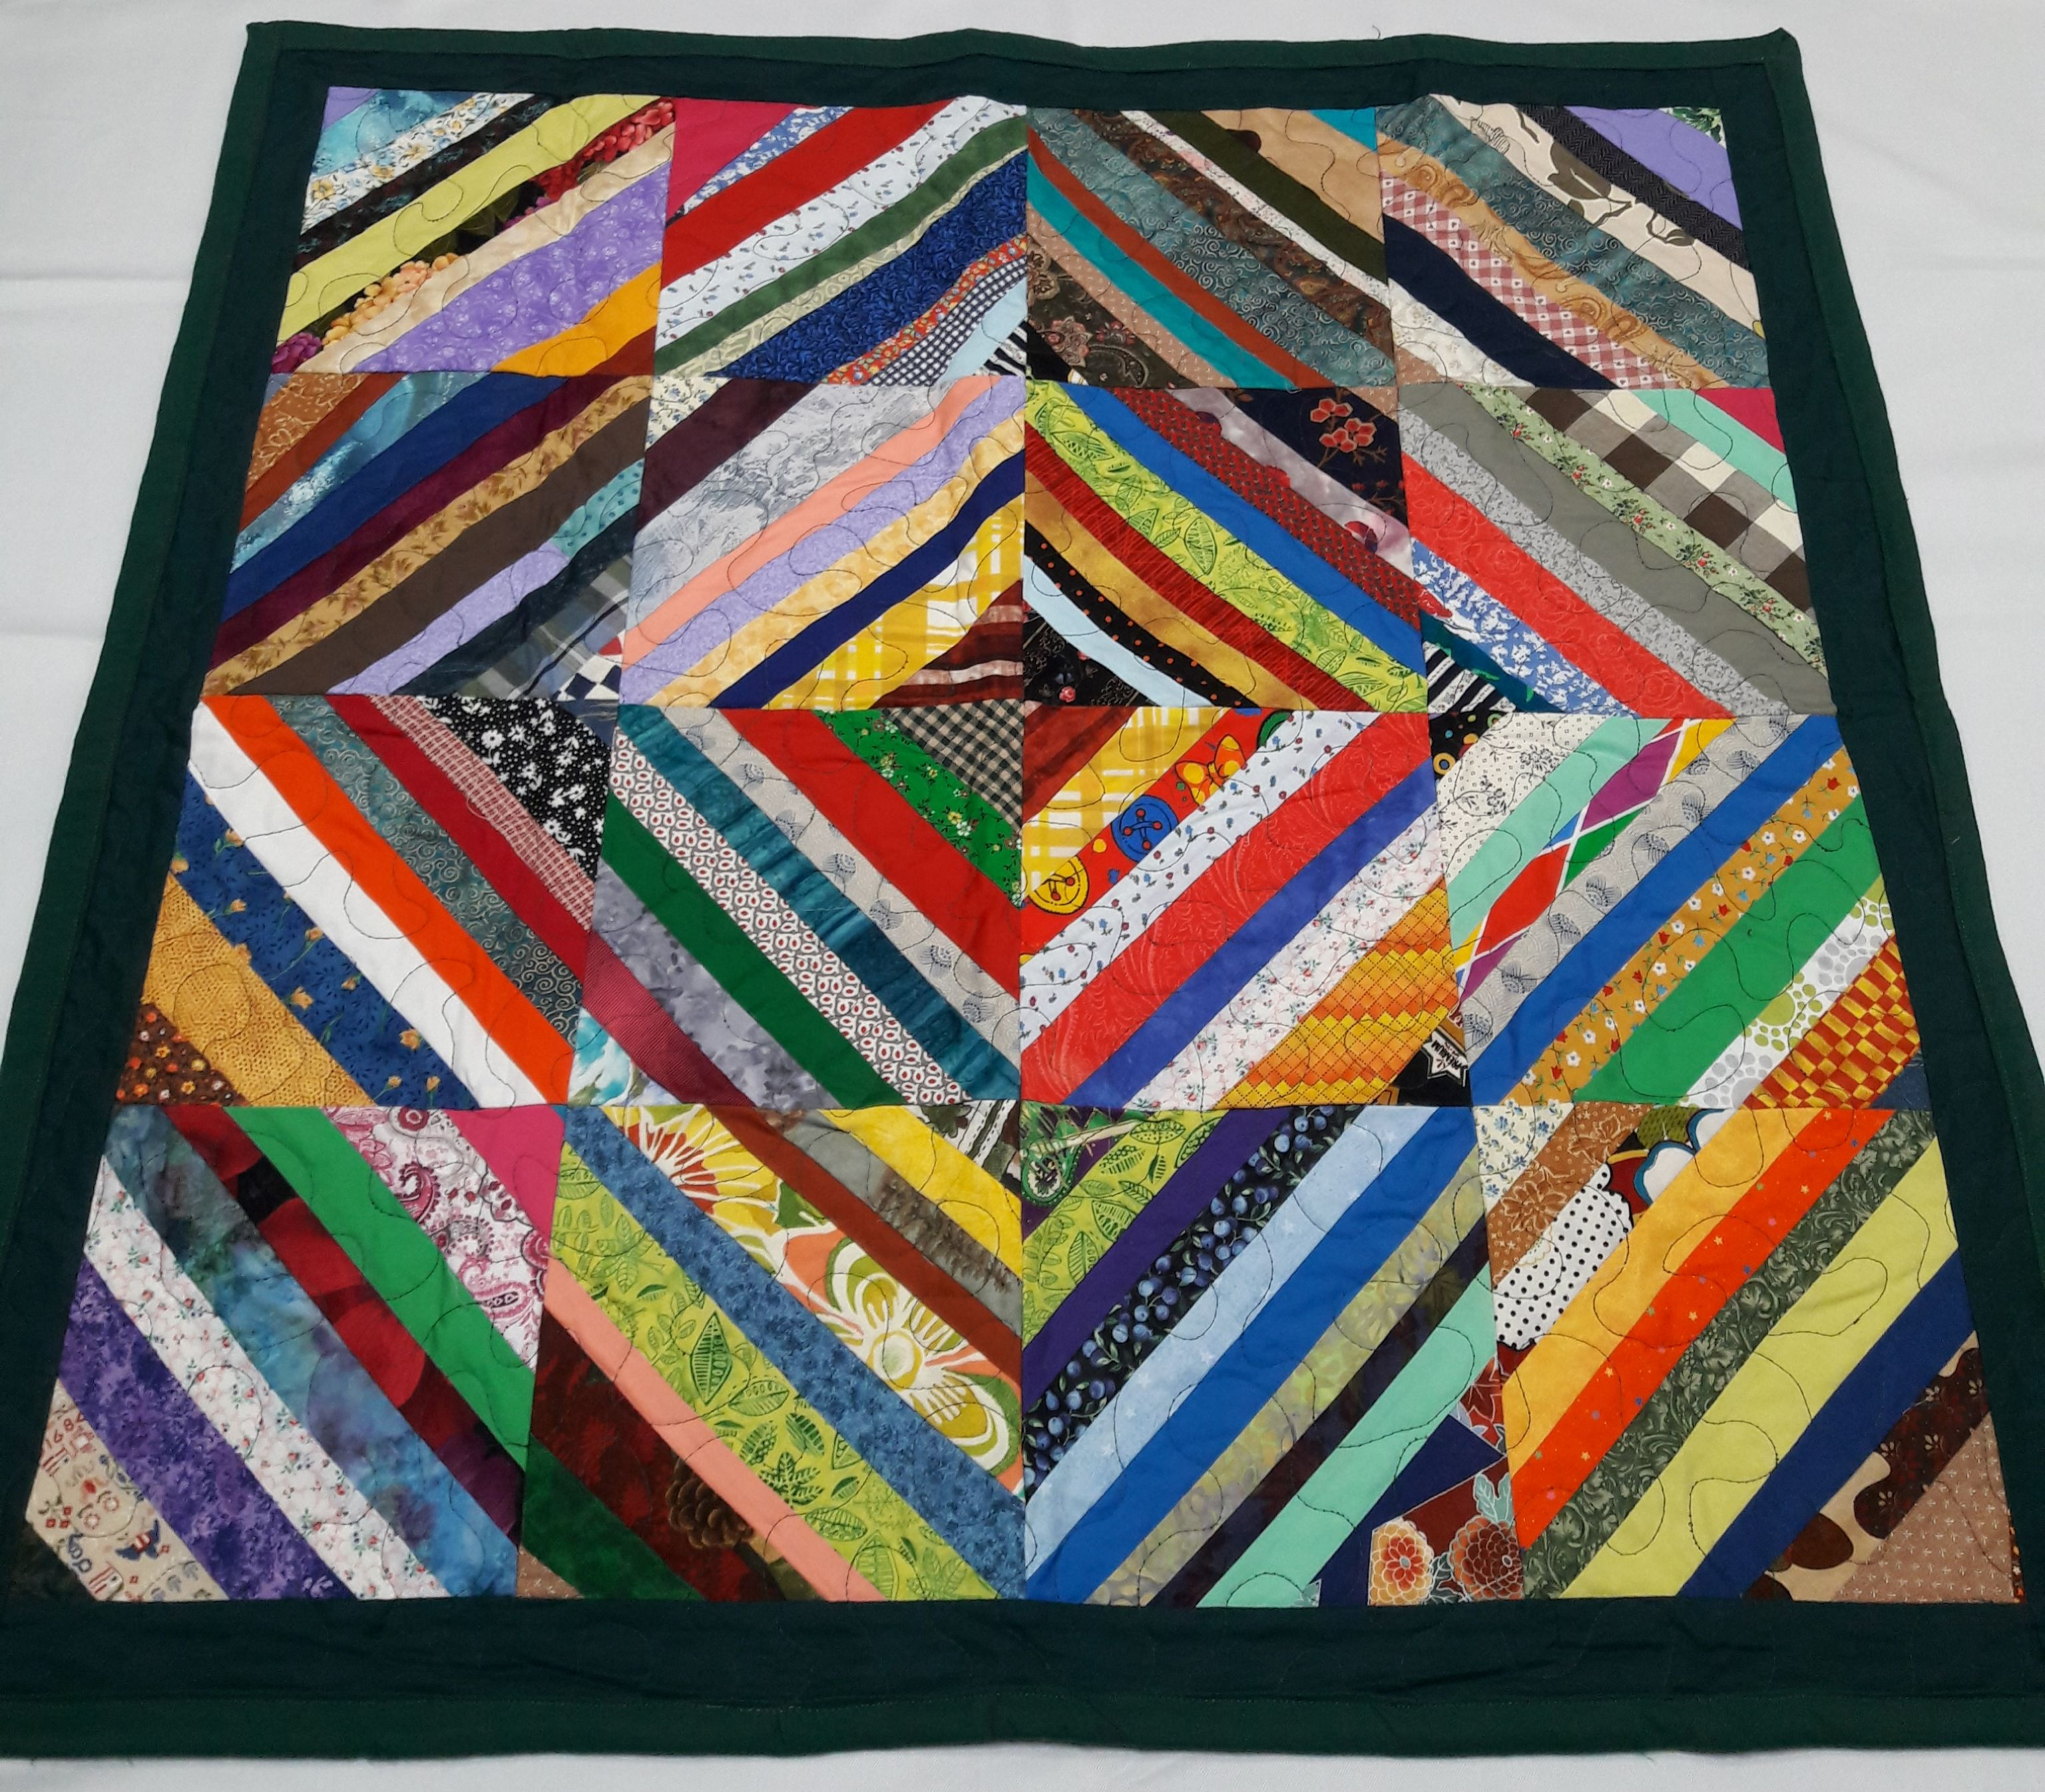 Here is a colorful quilt for a nursing home patient or